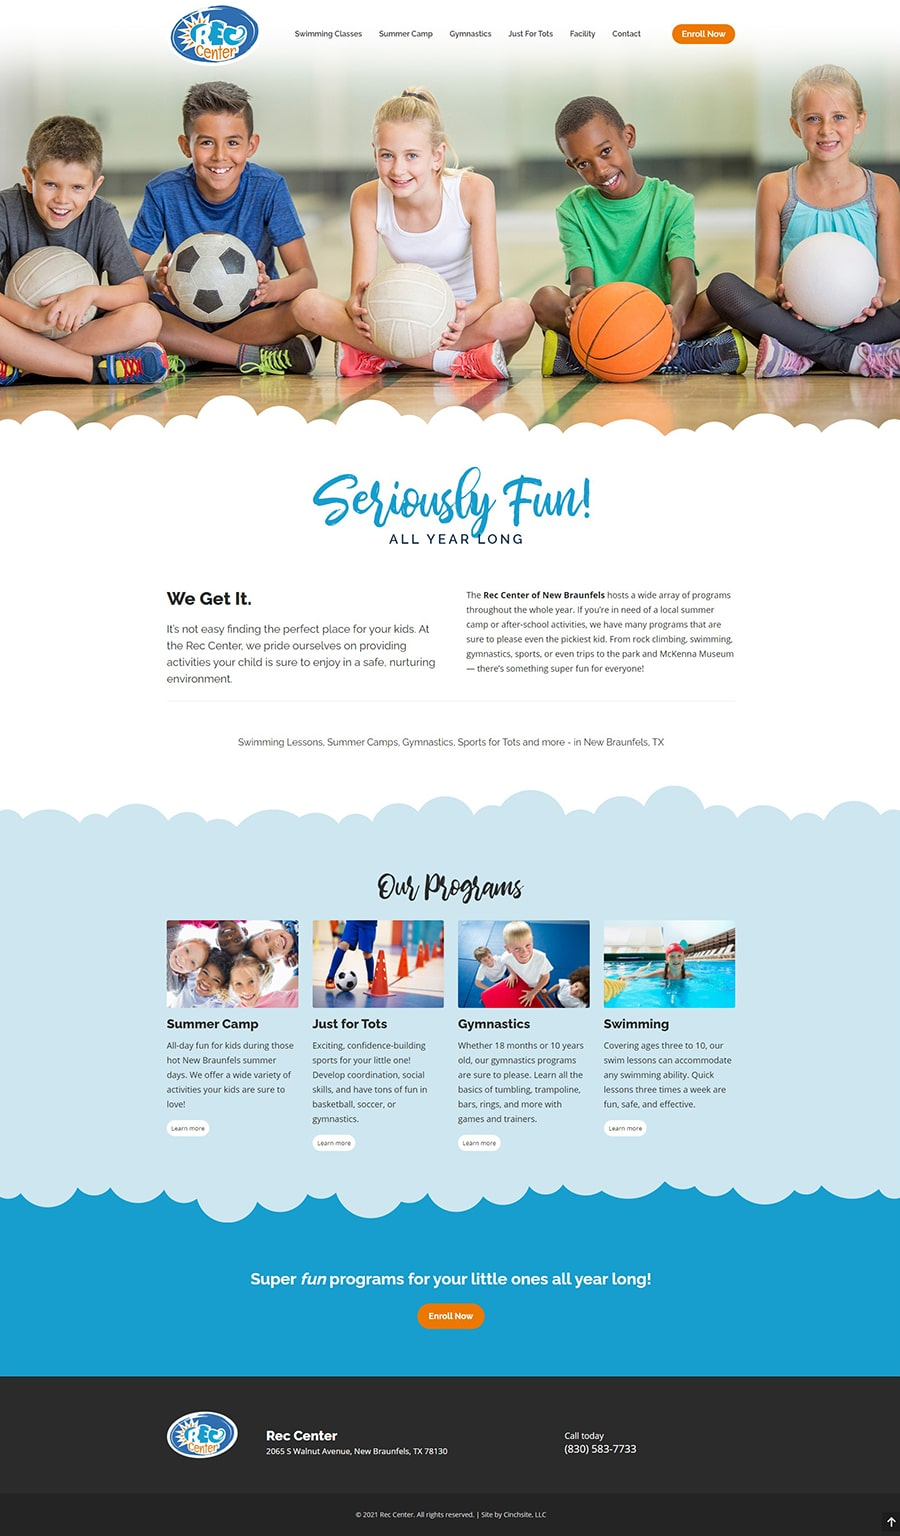 new braunfels rec center day camps web design by andrea garza